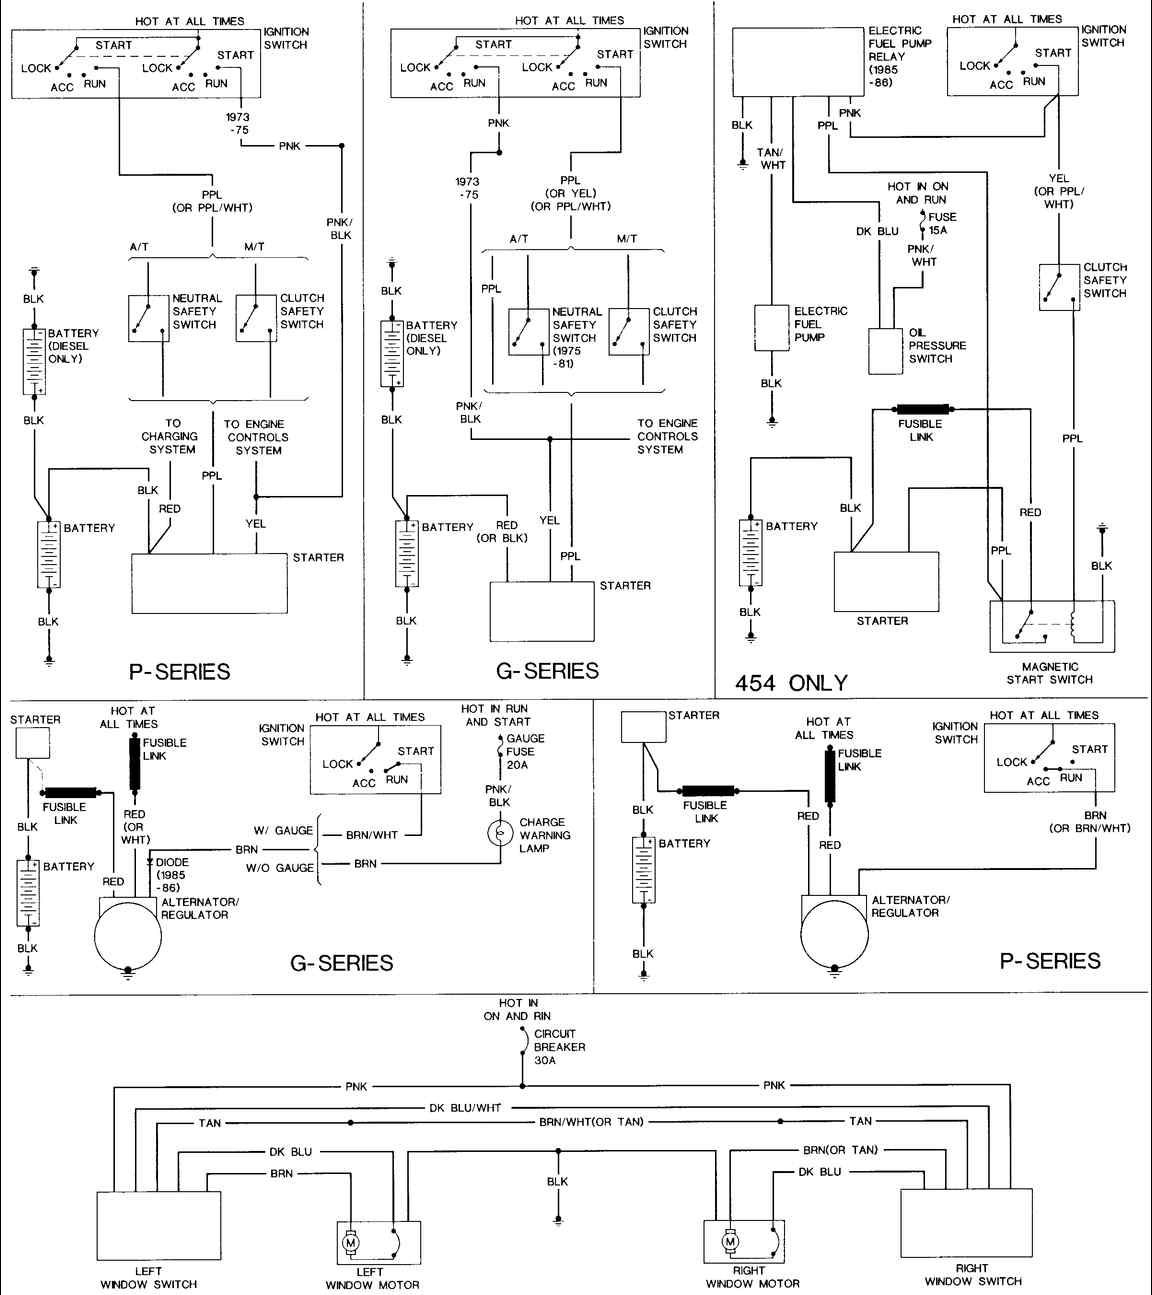 0c73623a181dc376dbb4777e2029d285 85 chevy truck wiring diagram 85 chevy van the steering column  at soozxer.org